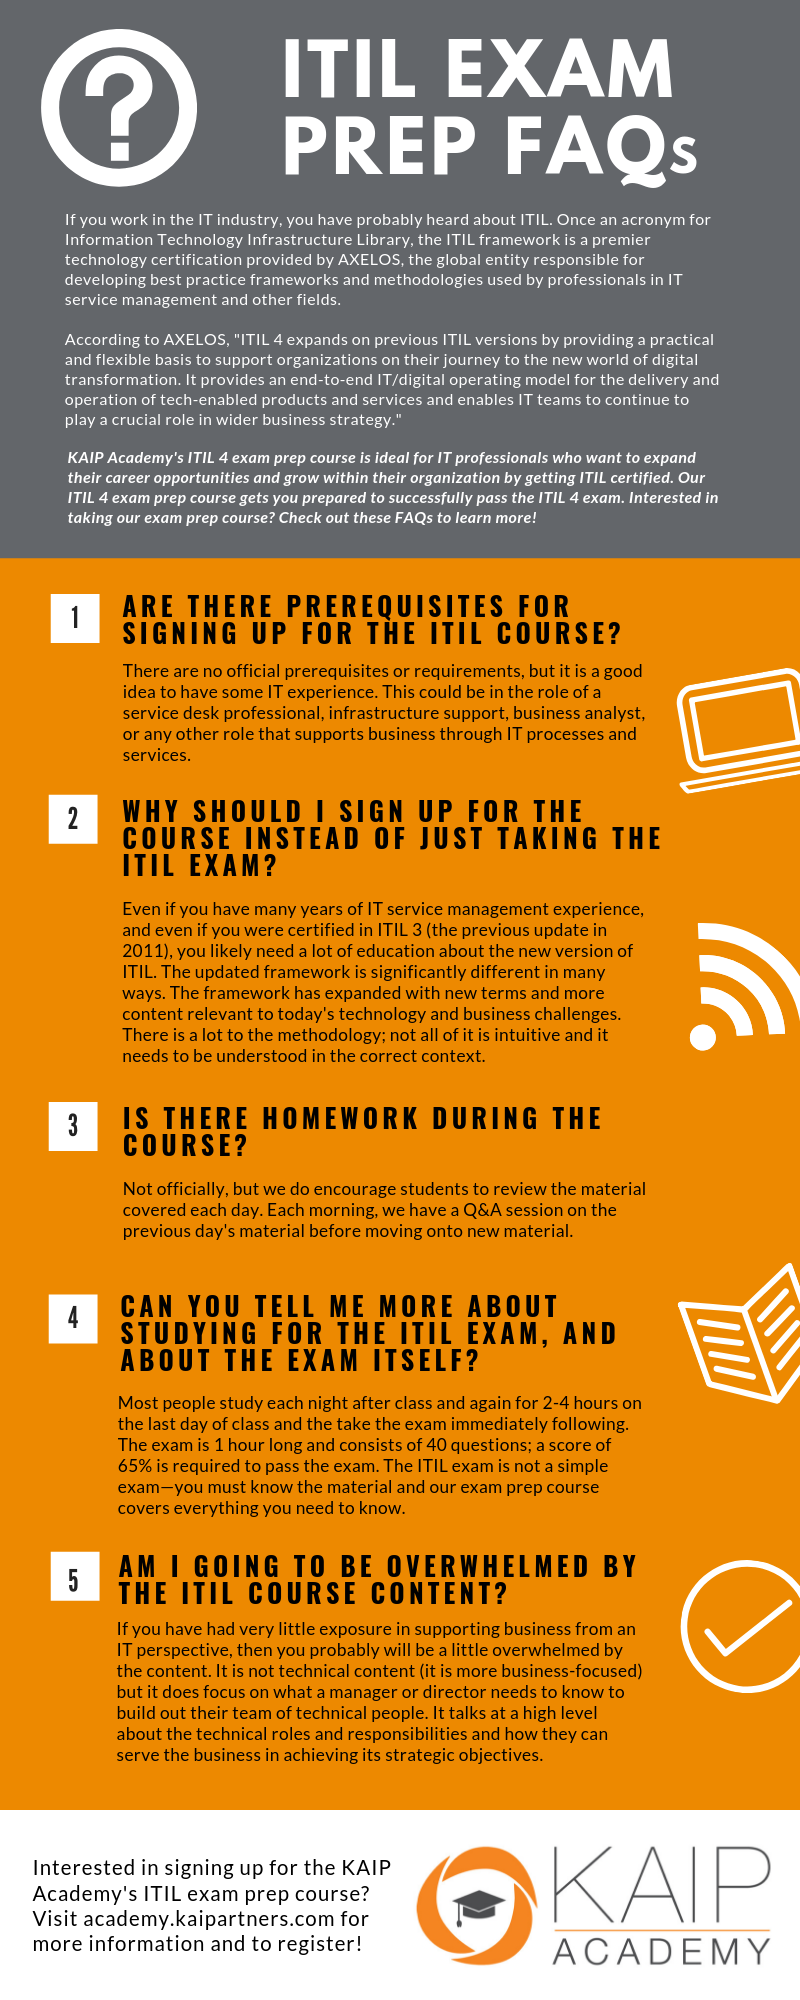 ITIL 4 Exam Prep FAQs [INFOGRAPHIC] | KAI Partners